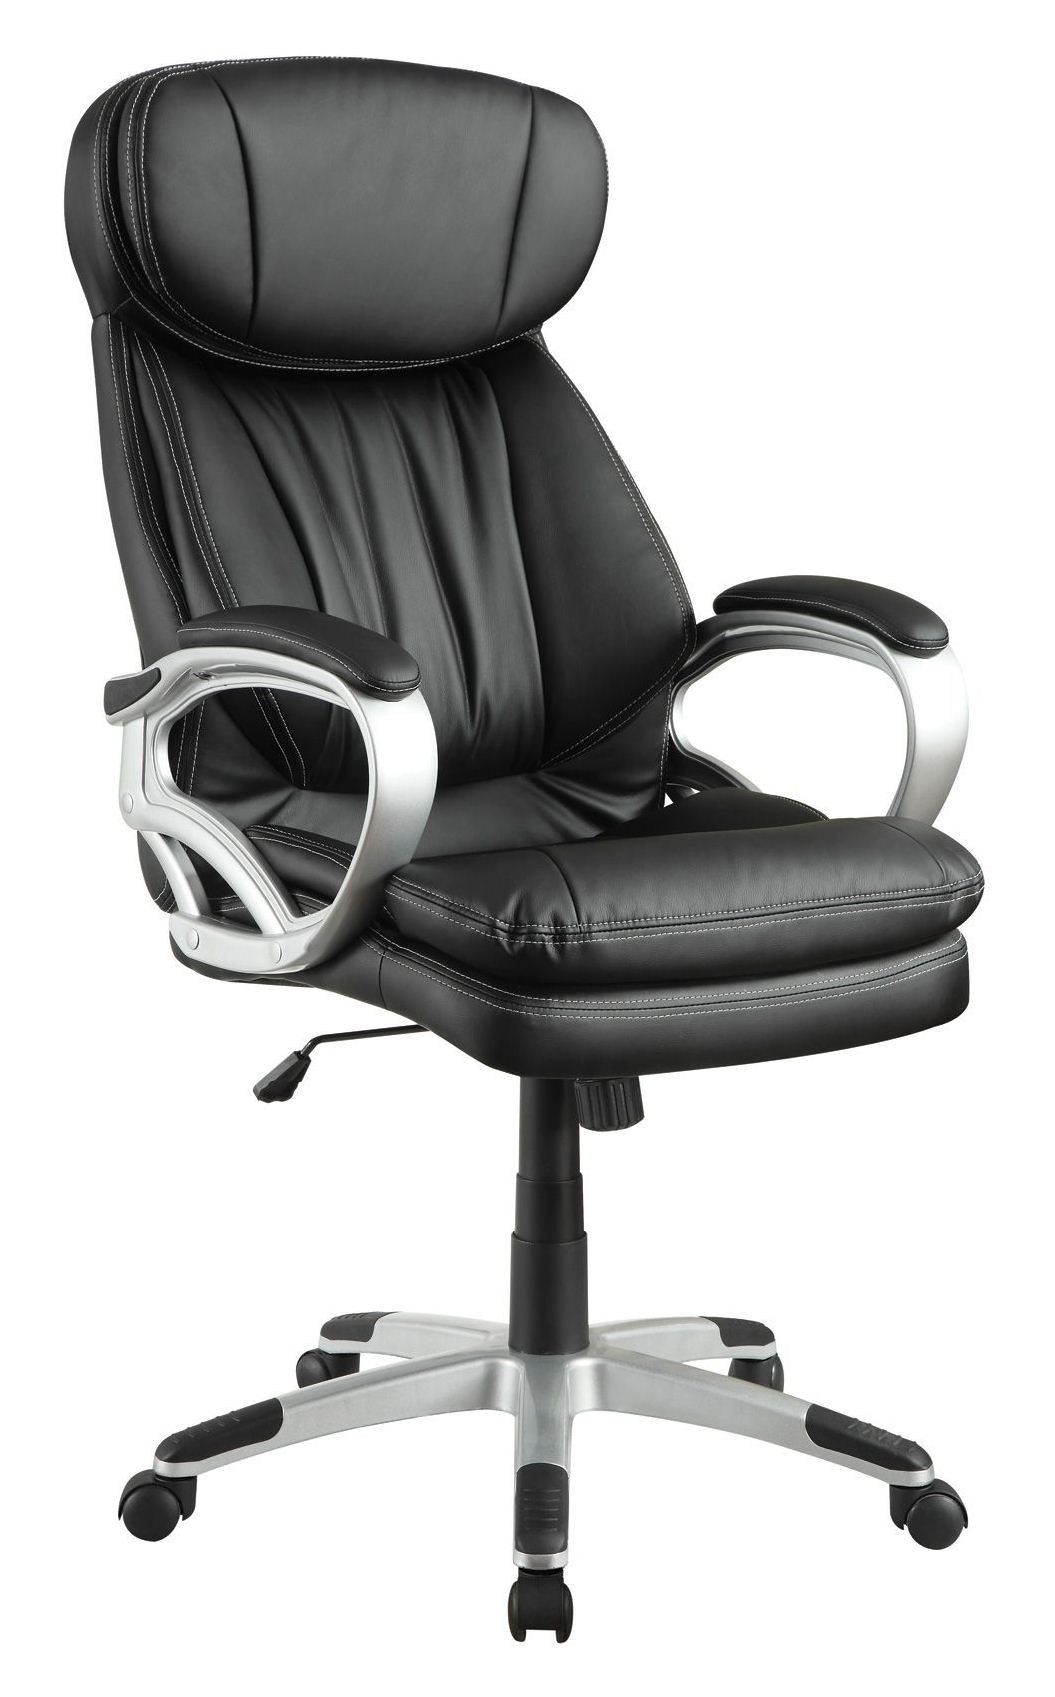 dillon chair 1 2 etsy high covers 800165 black upholstered office from coaster